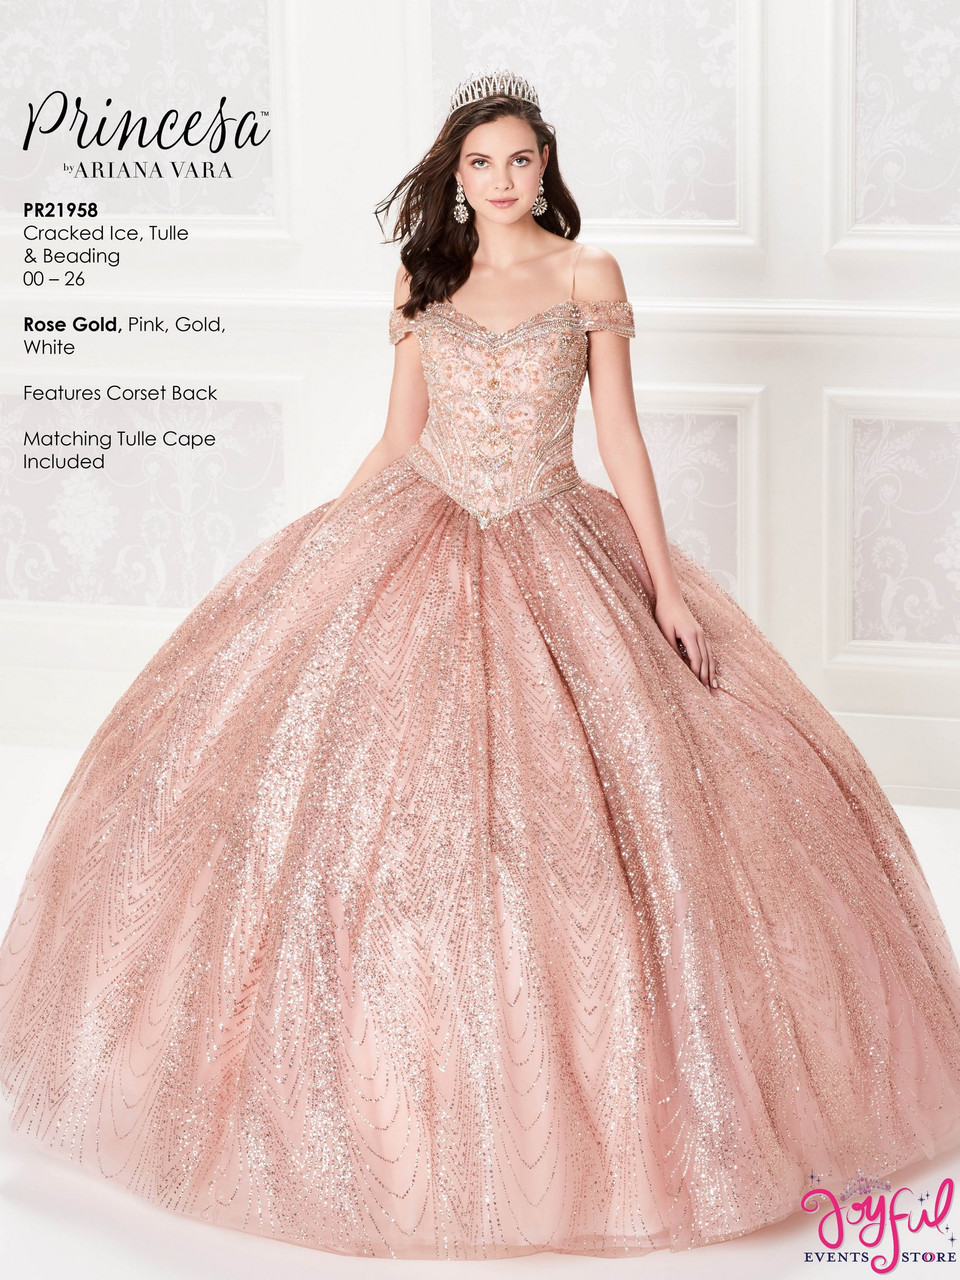 rose gold champagne quince dress